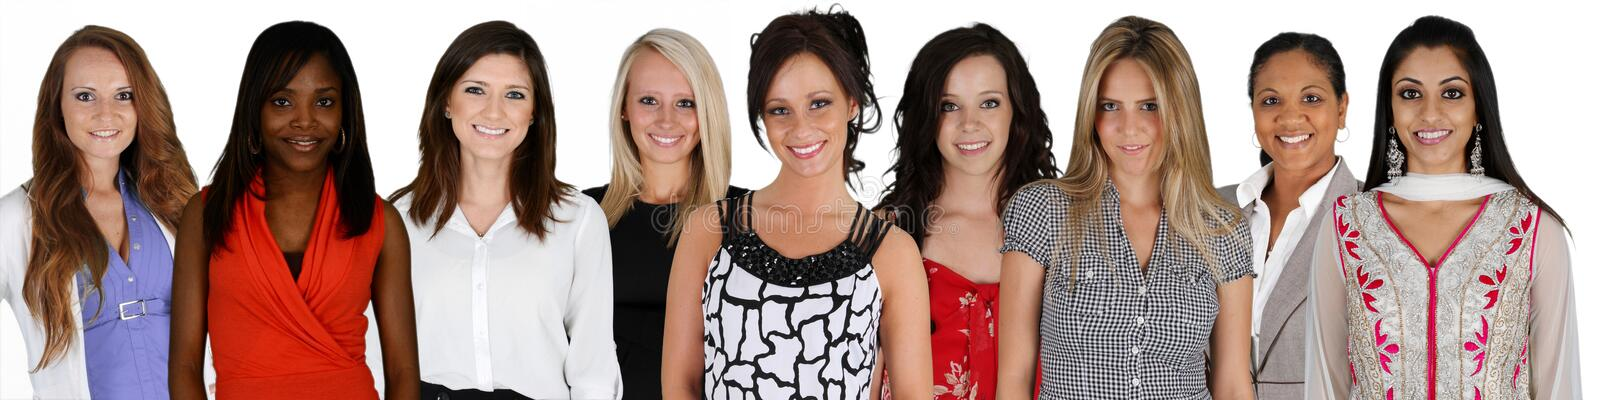 Group of Women stock photography